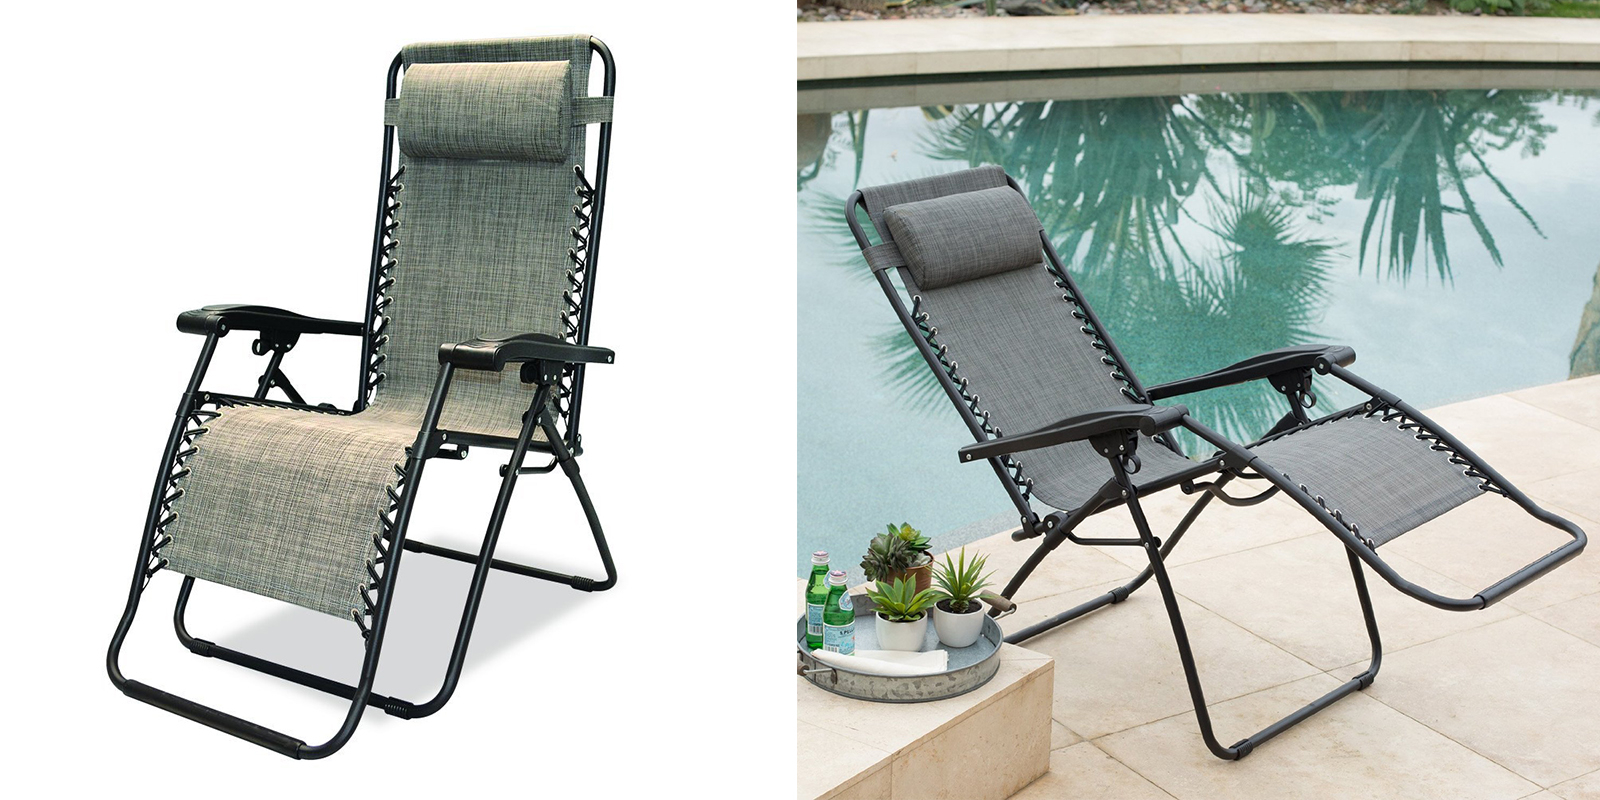 Discount Patio Chair 25 Best Patio Chairs To Buy Right Now